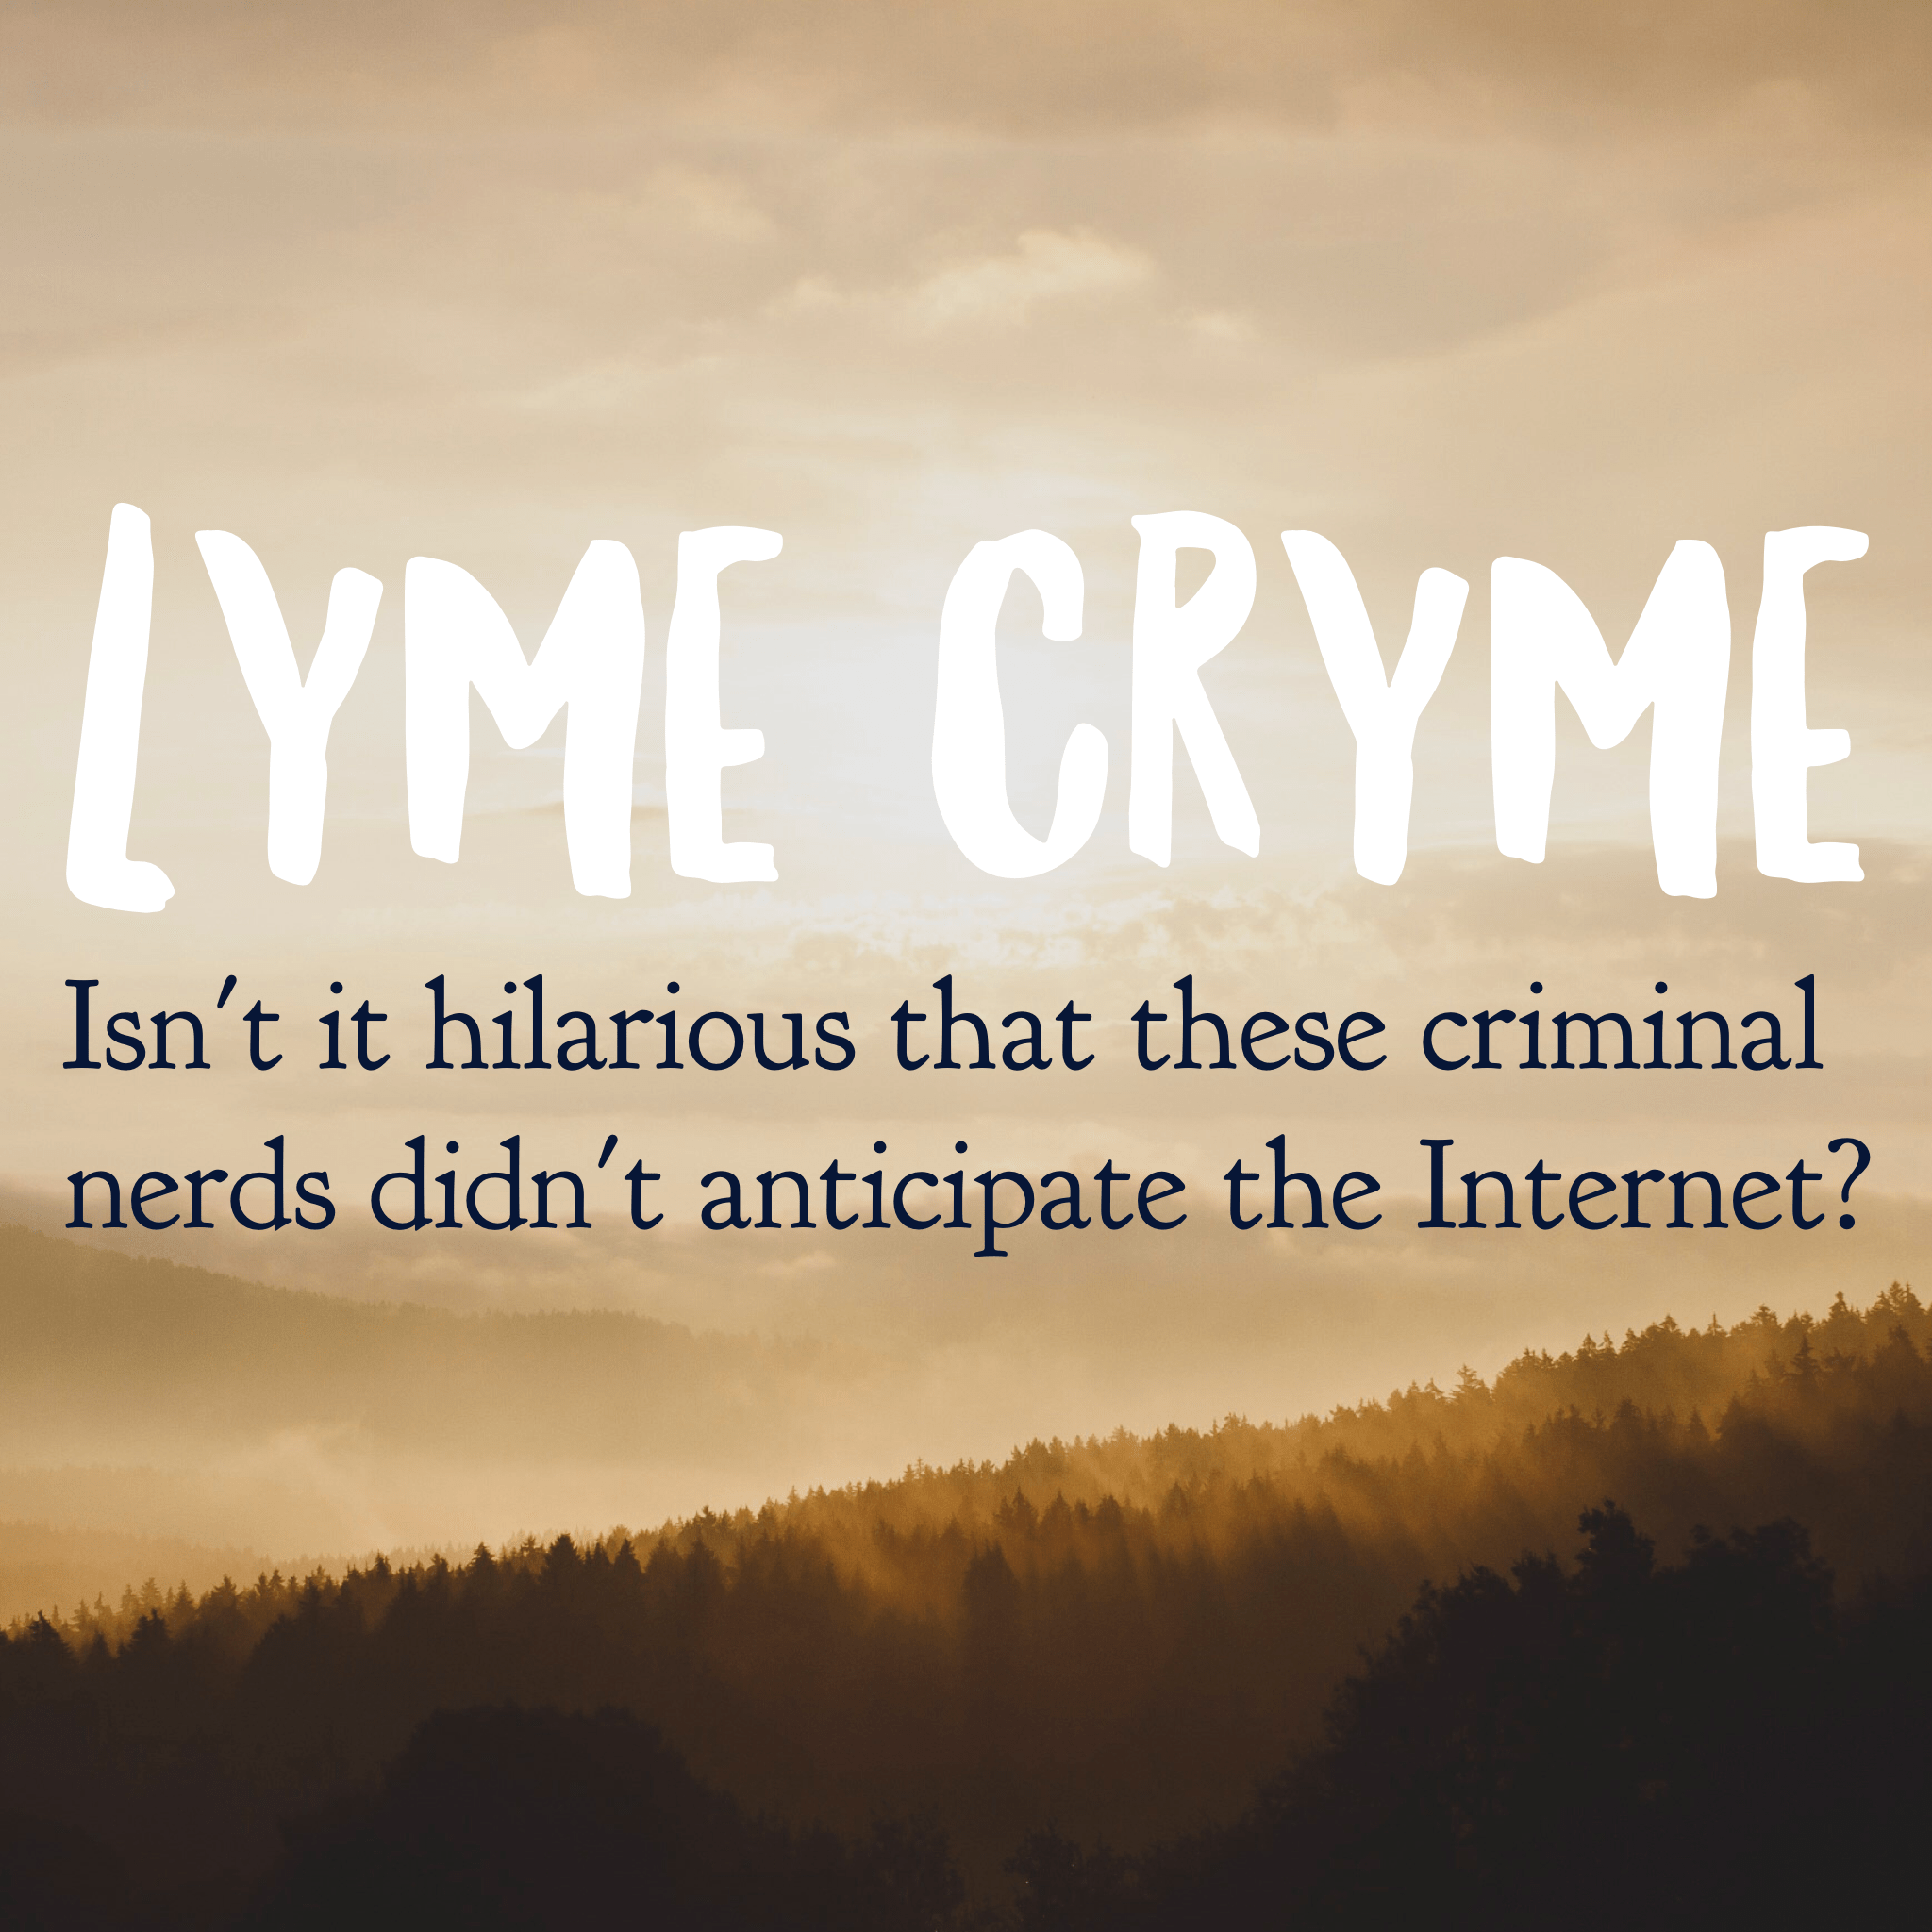 Lyme Cryme: How it all Went Down